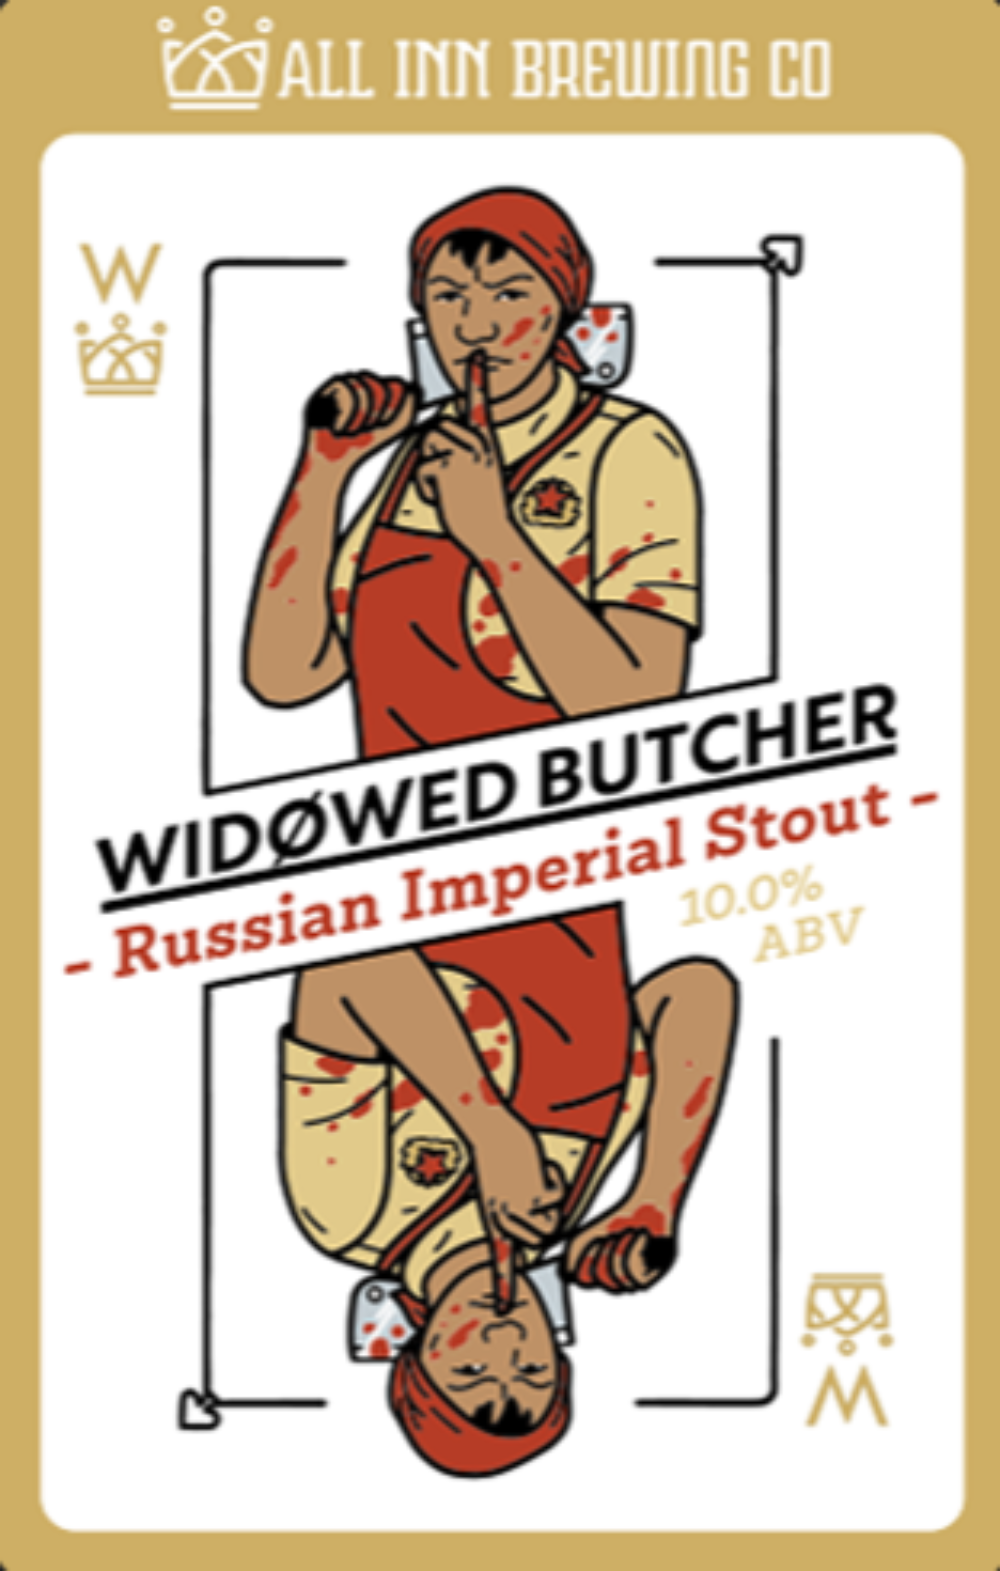 All in Brewing FWK - Widowed Butcher - Russian Imperial Stout